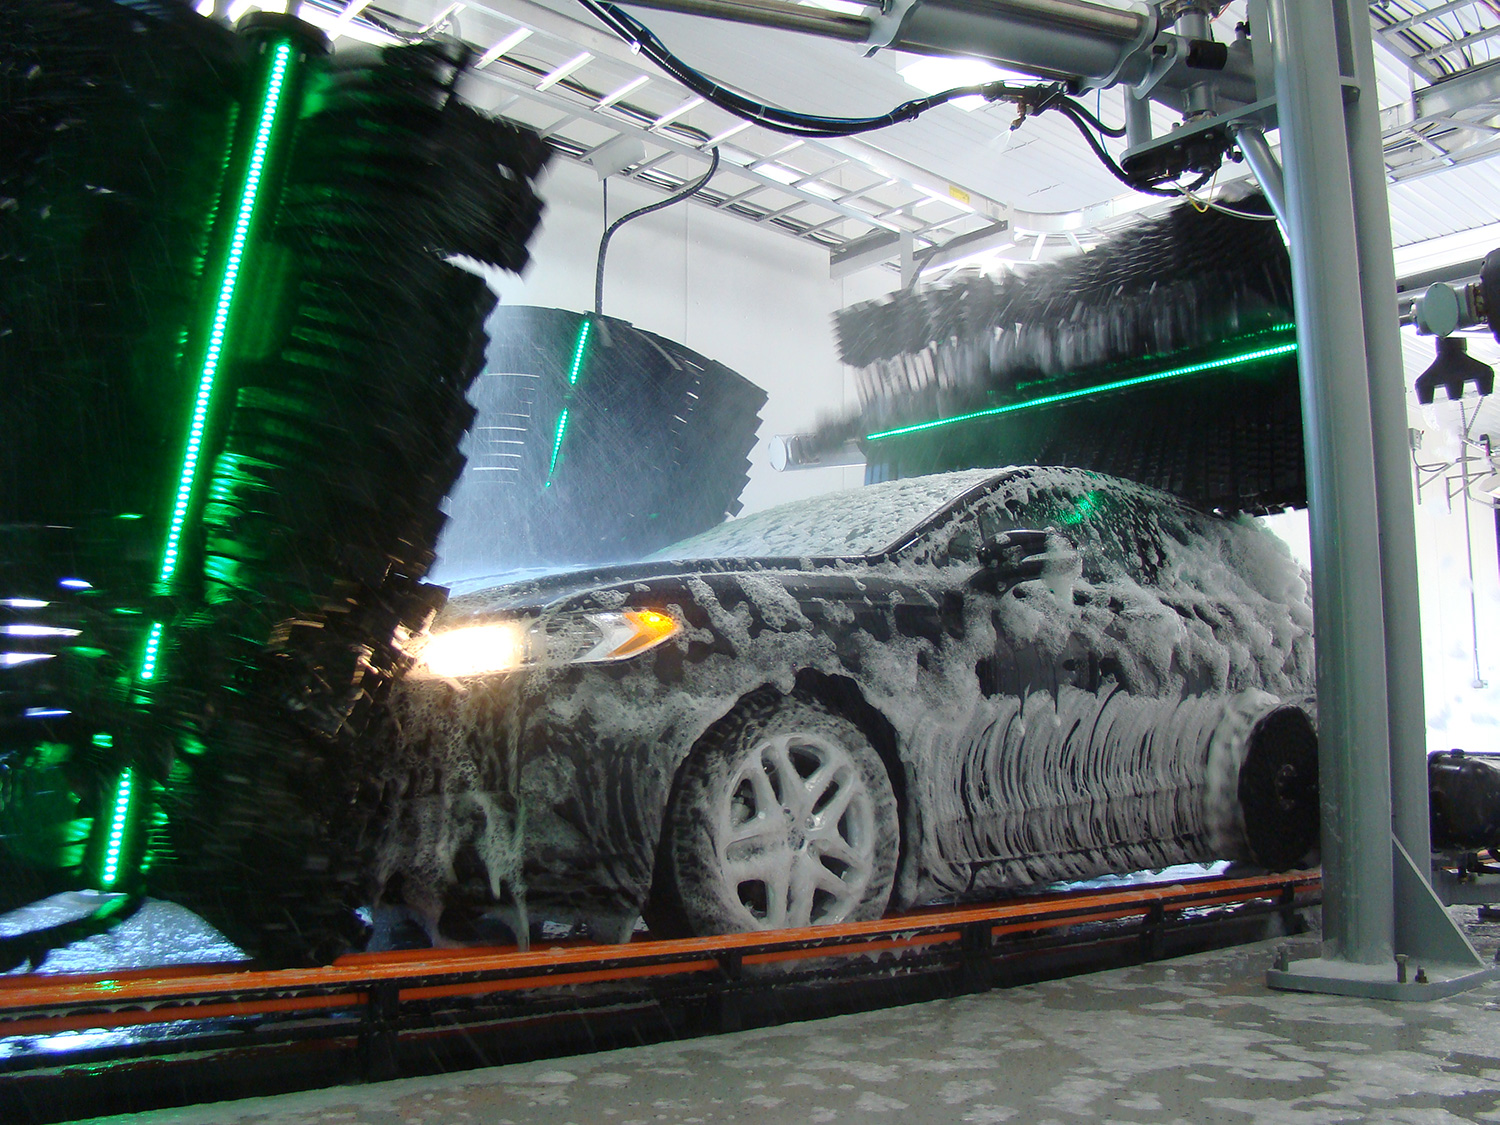 Touchless Car Wash, Drive-Through Automatic Wash - Great White